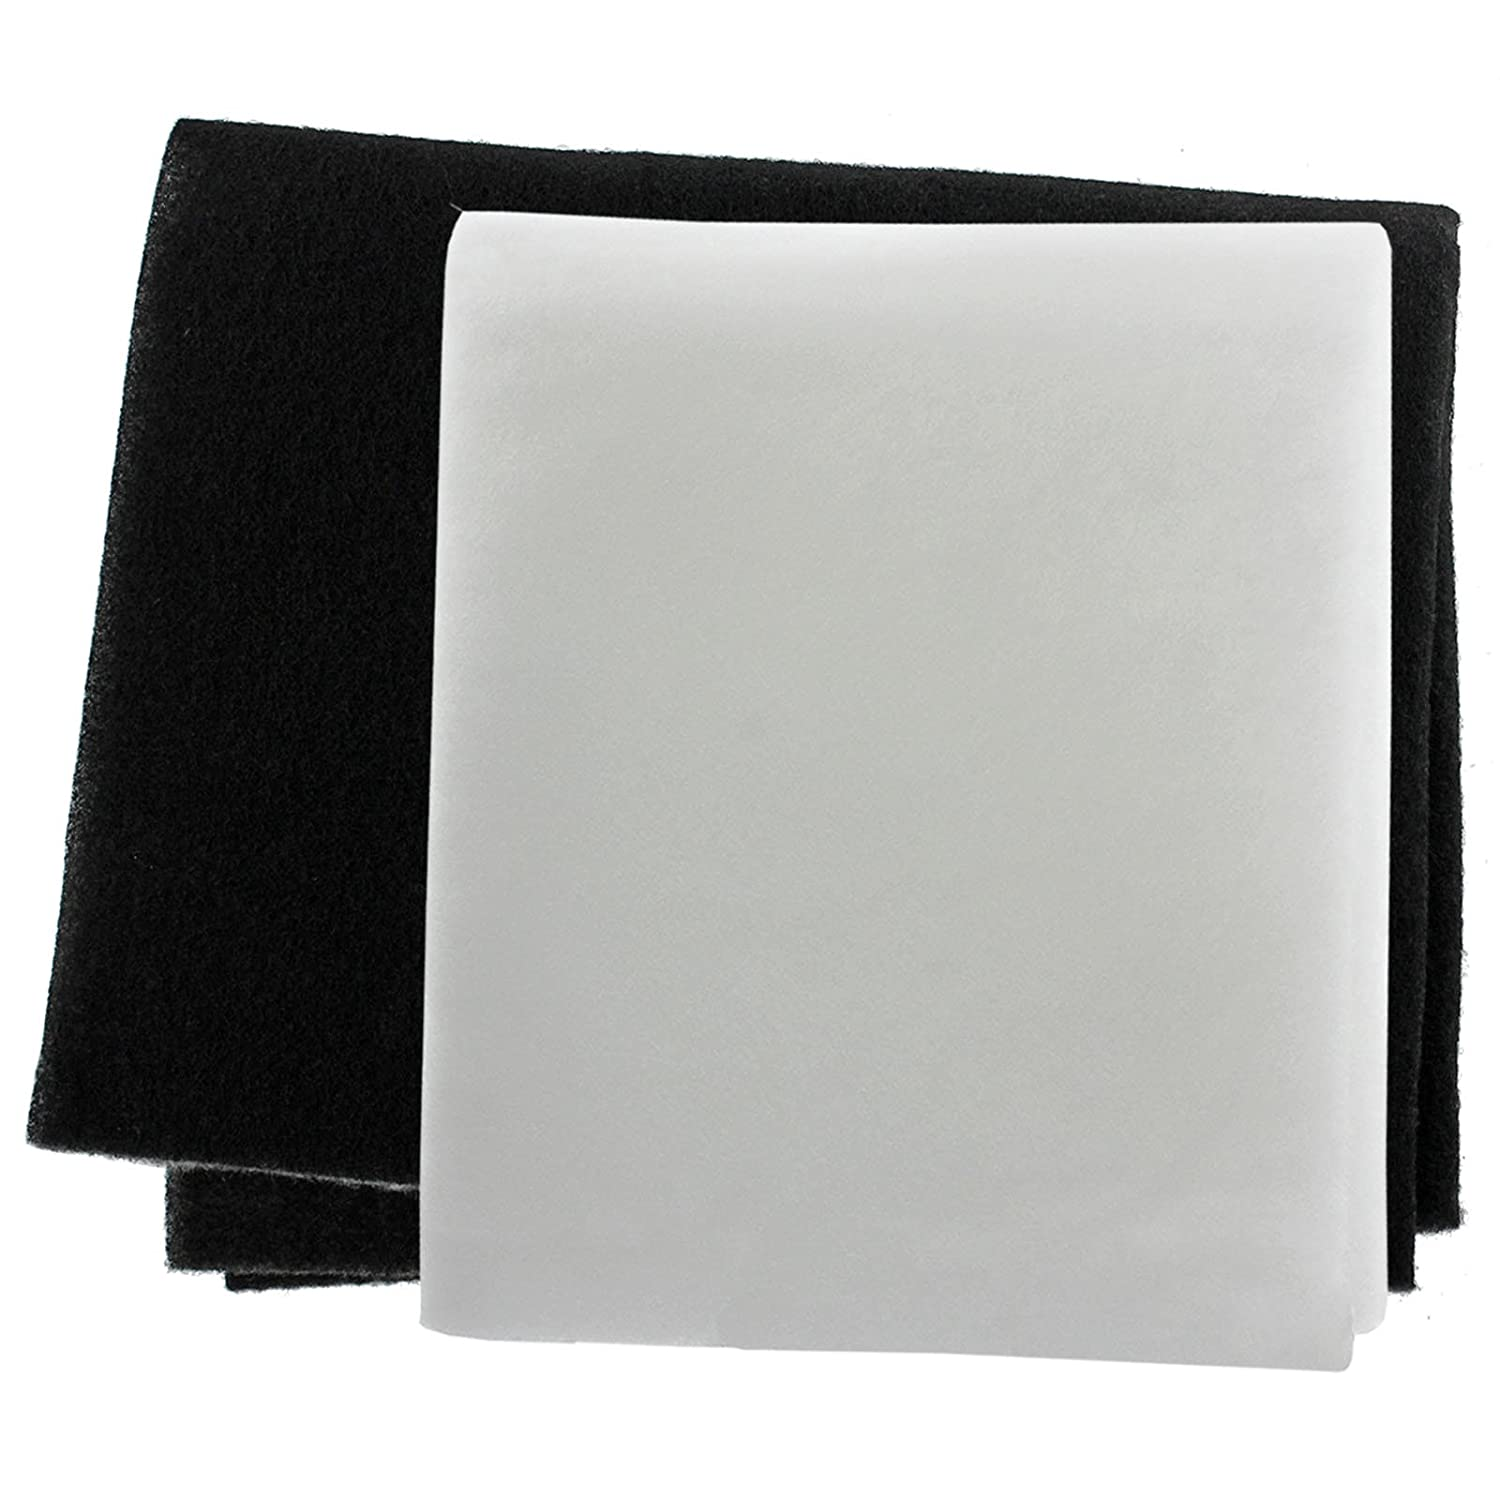 SPARES2GO Cooker Hood Grease Filter Kit for Necht Extractor Fan Vent (Pack of 2 Filters, Cut to Size)